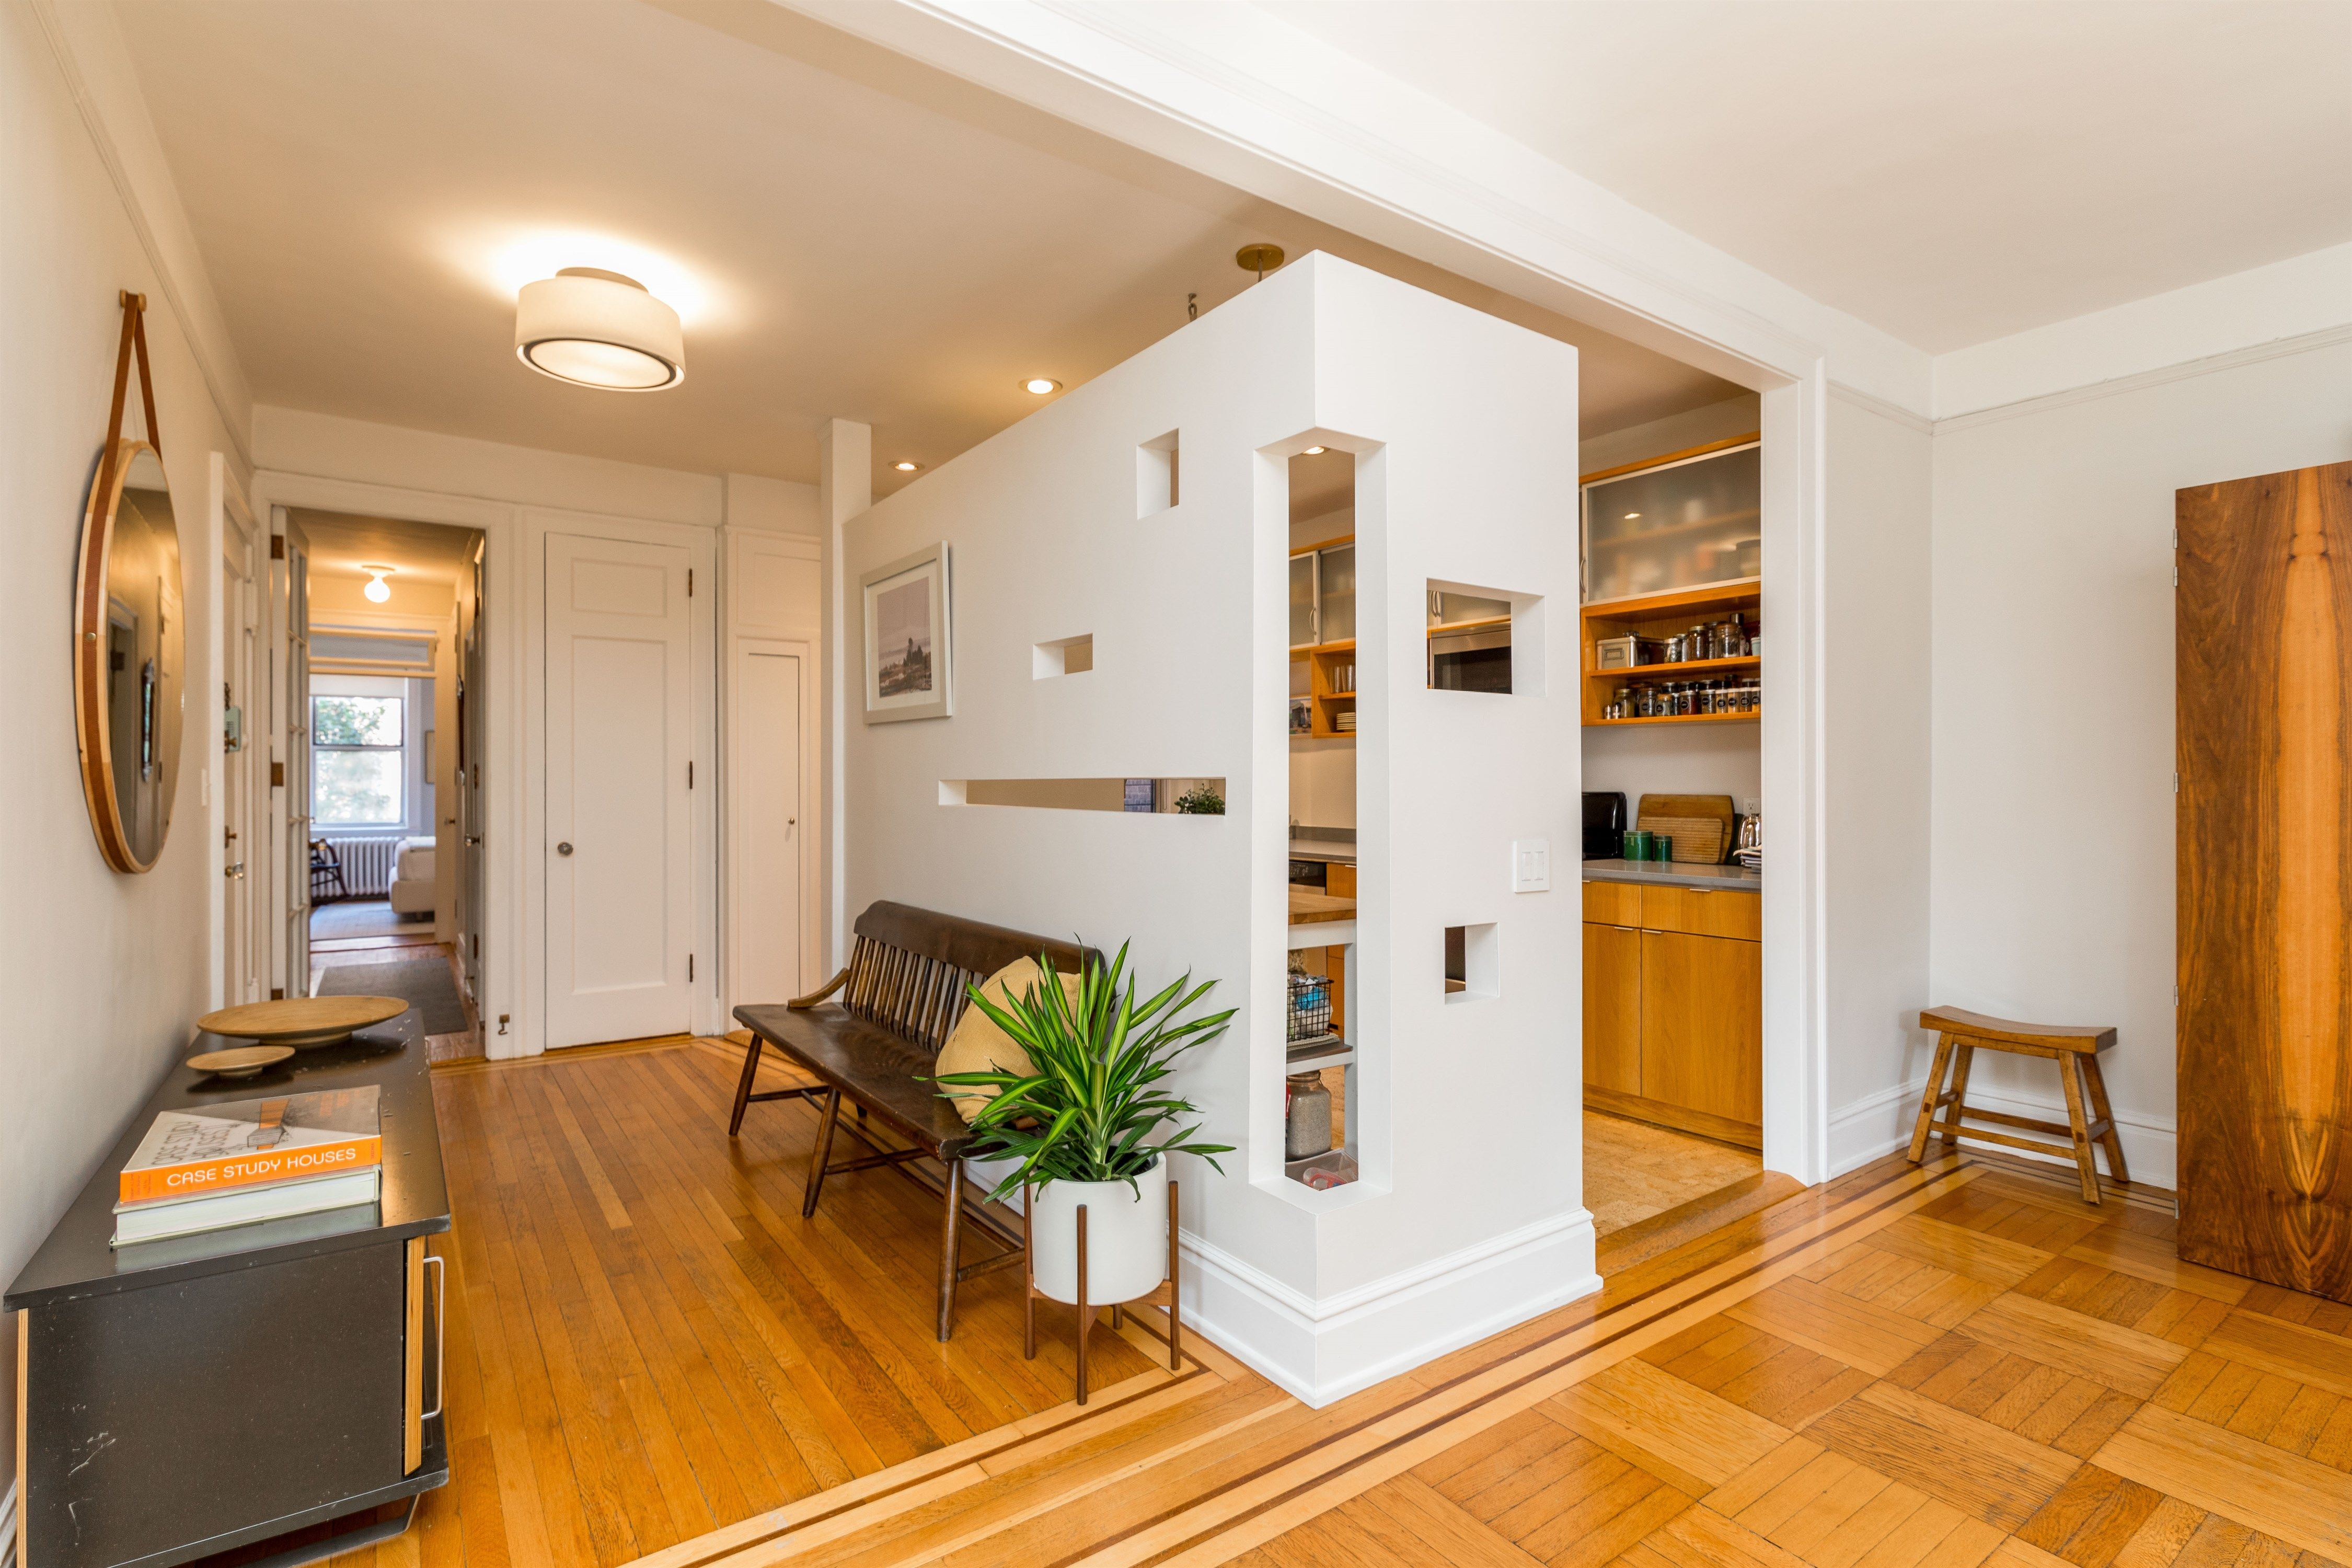 2 Bedroom With Working Fireplace In Historical Section Of Jackson Heights Photo 13 - BROWNSTONER-LISTING-3055555